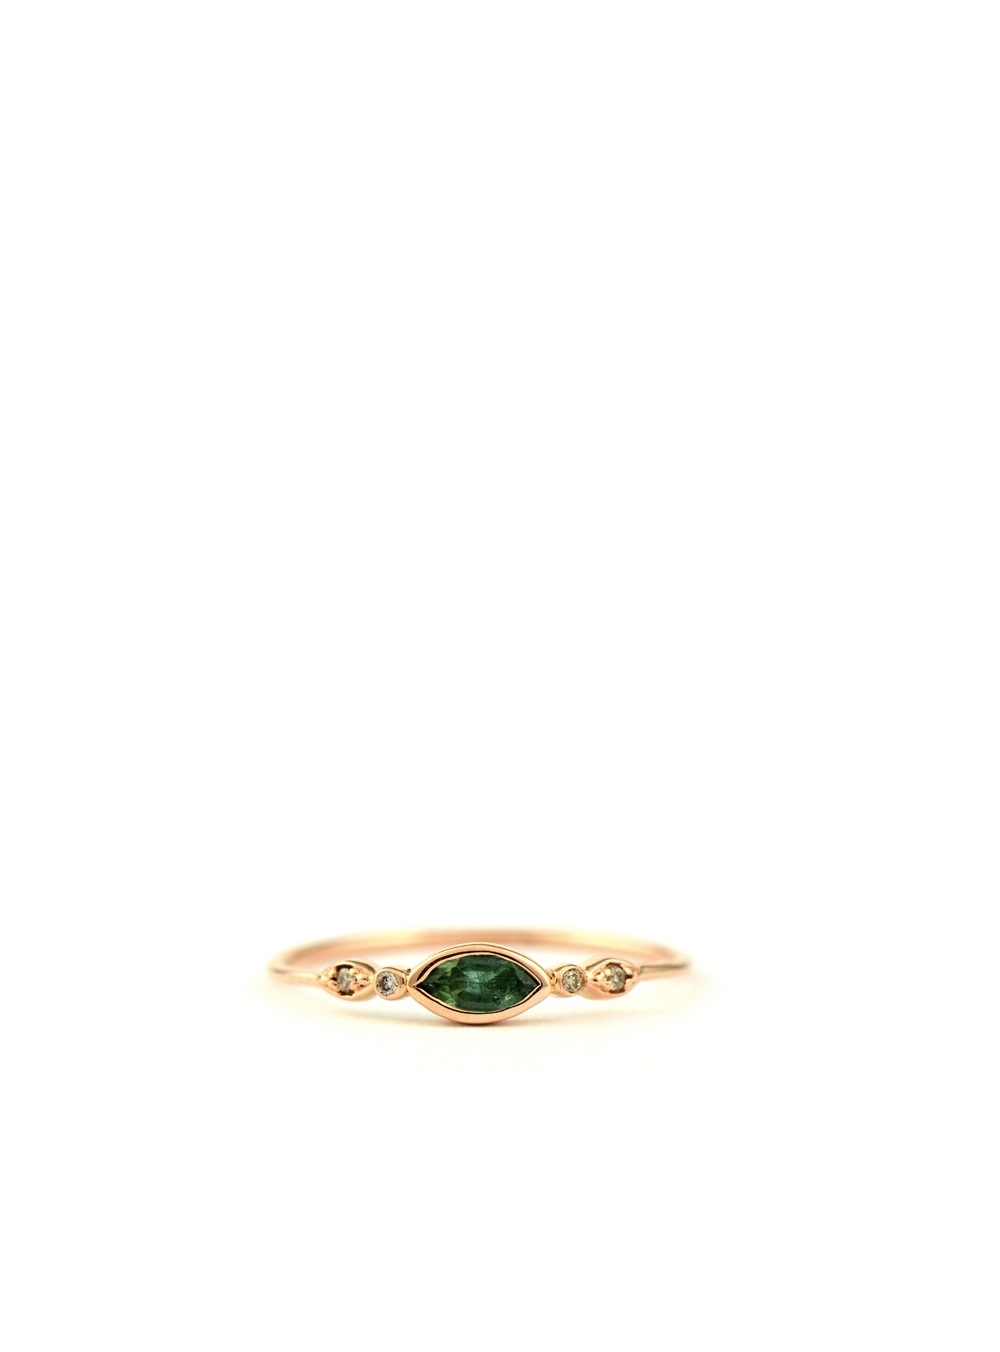 BAGUE TOURMALINE MARQUISE